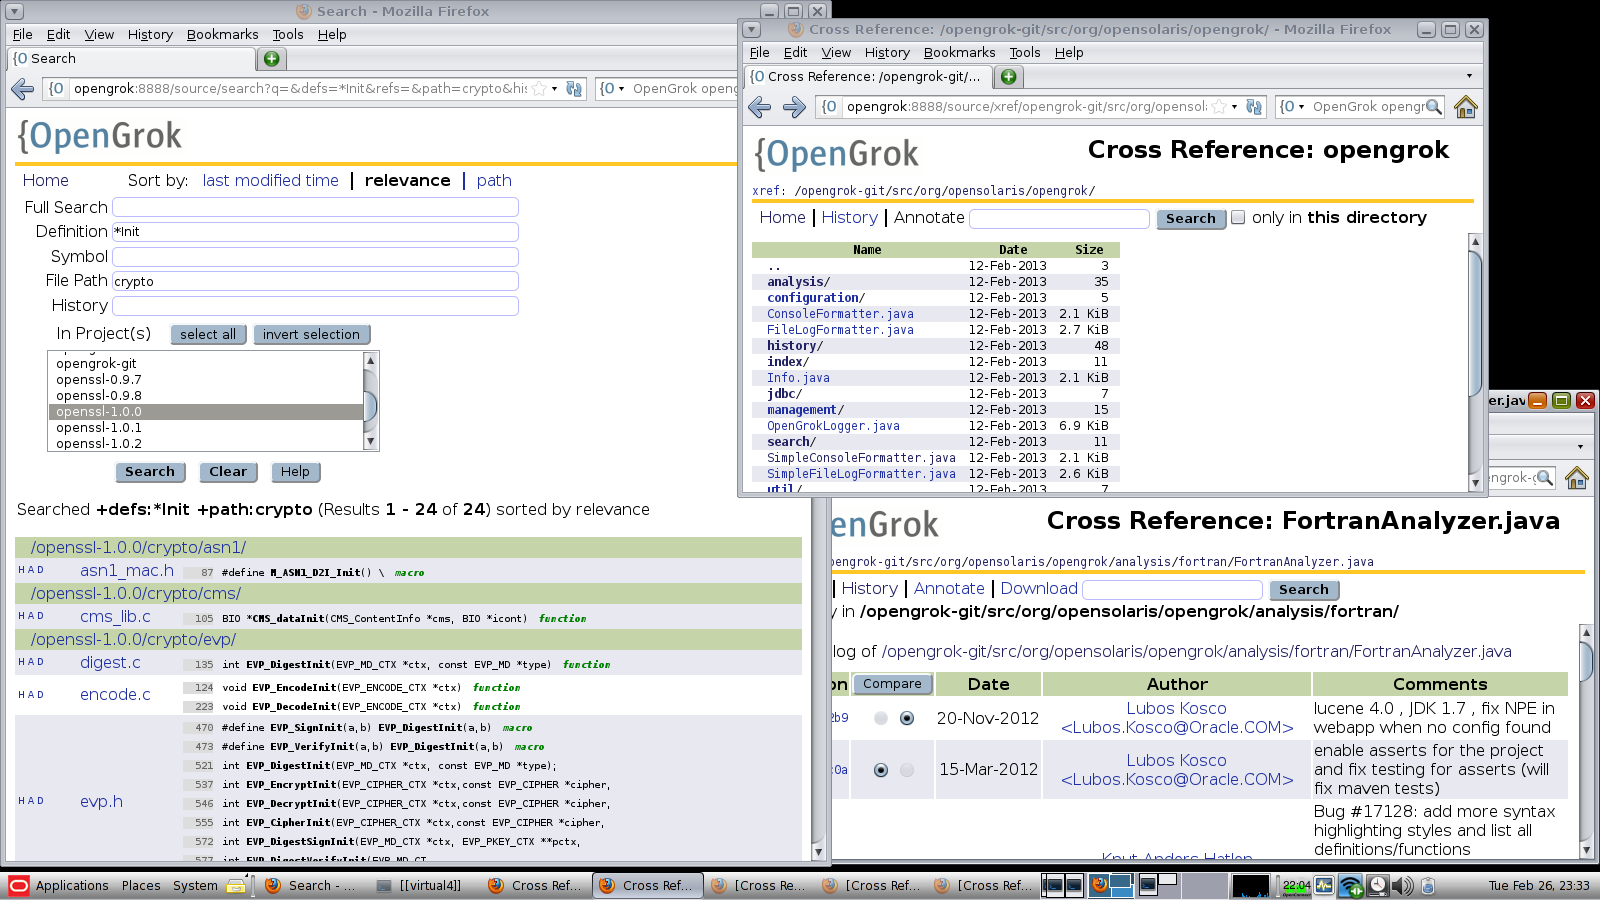 OpenGrok Search and Browse